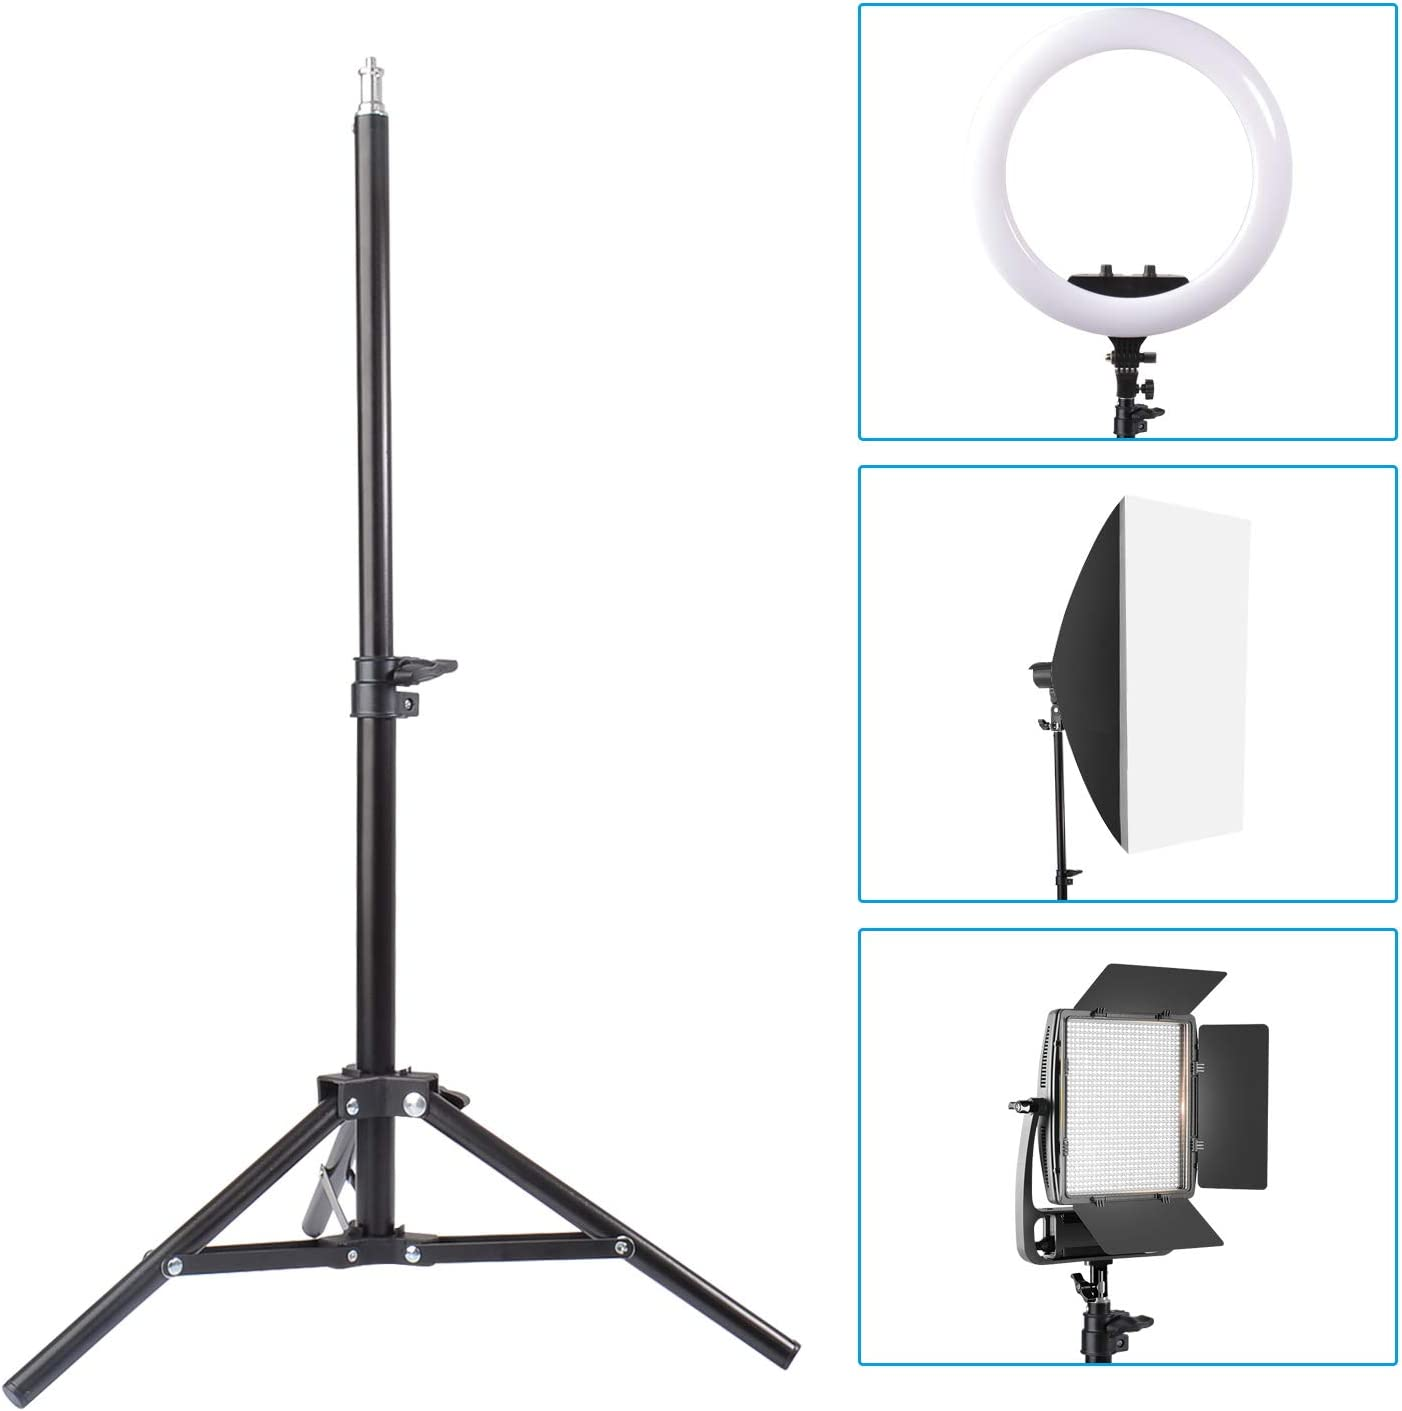 Table Top Light Stand Webcam Backgrounds Camera Camcorder Projector Softboxes Reflectors 2 Packs Riqiorod Mini Aluminum Photography Tripod with 32//80cm Max Height for Ring Light Umbrellas